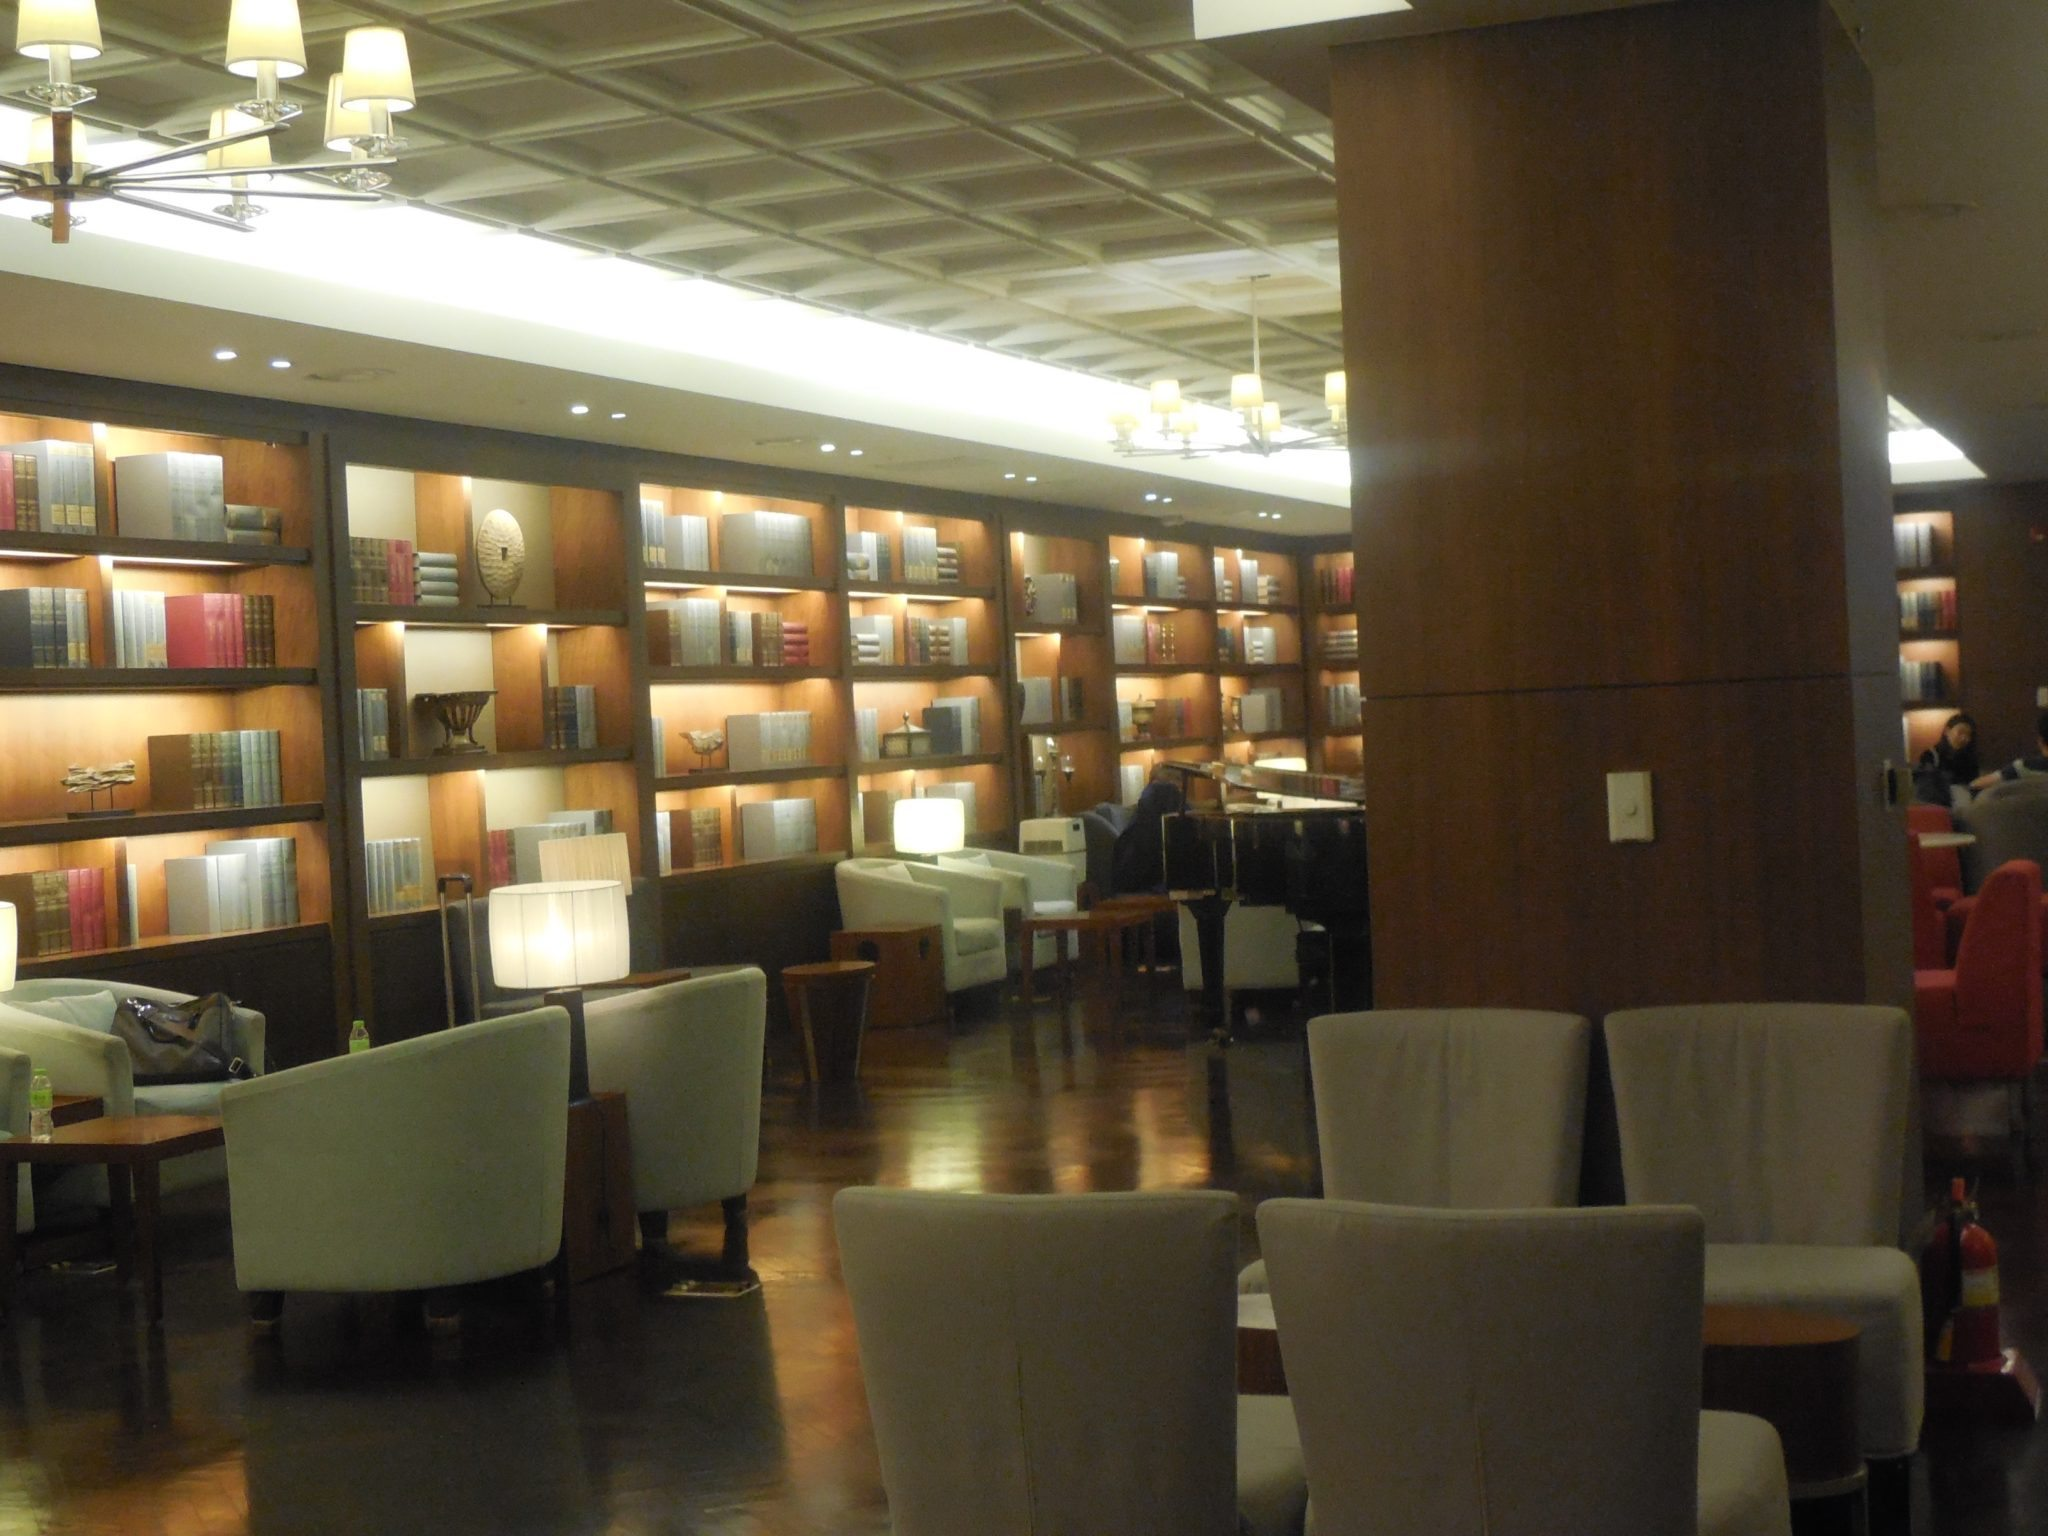 1 or 2 rated seoul incheon airport and asiana lounge for Asiana korean cuisine restaurant racine